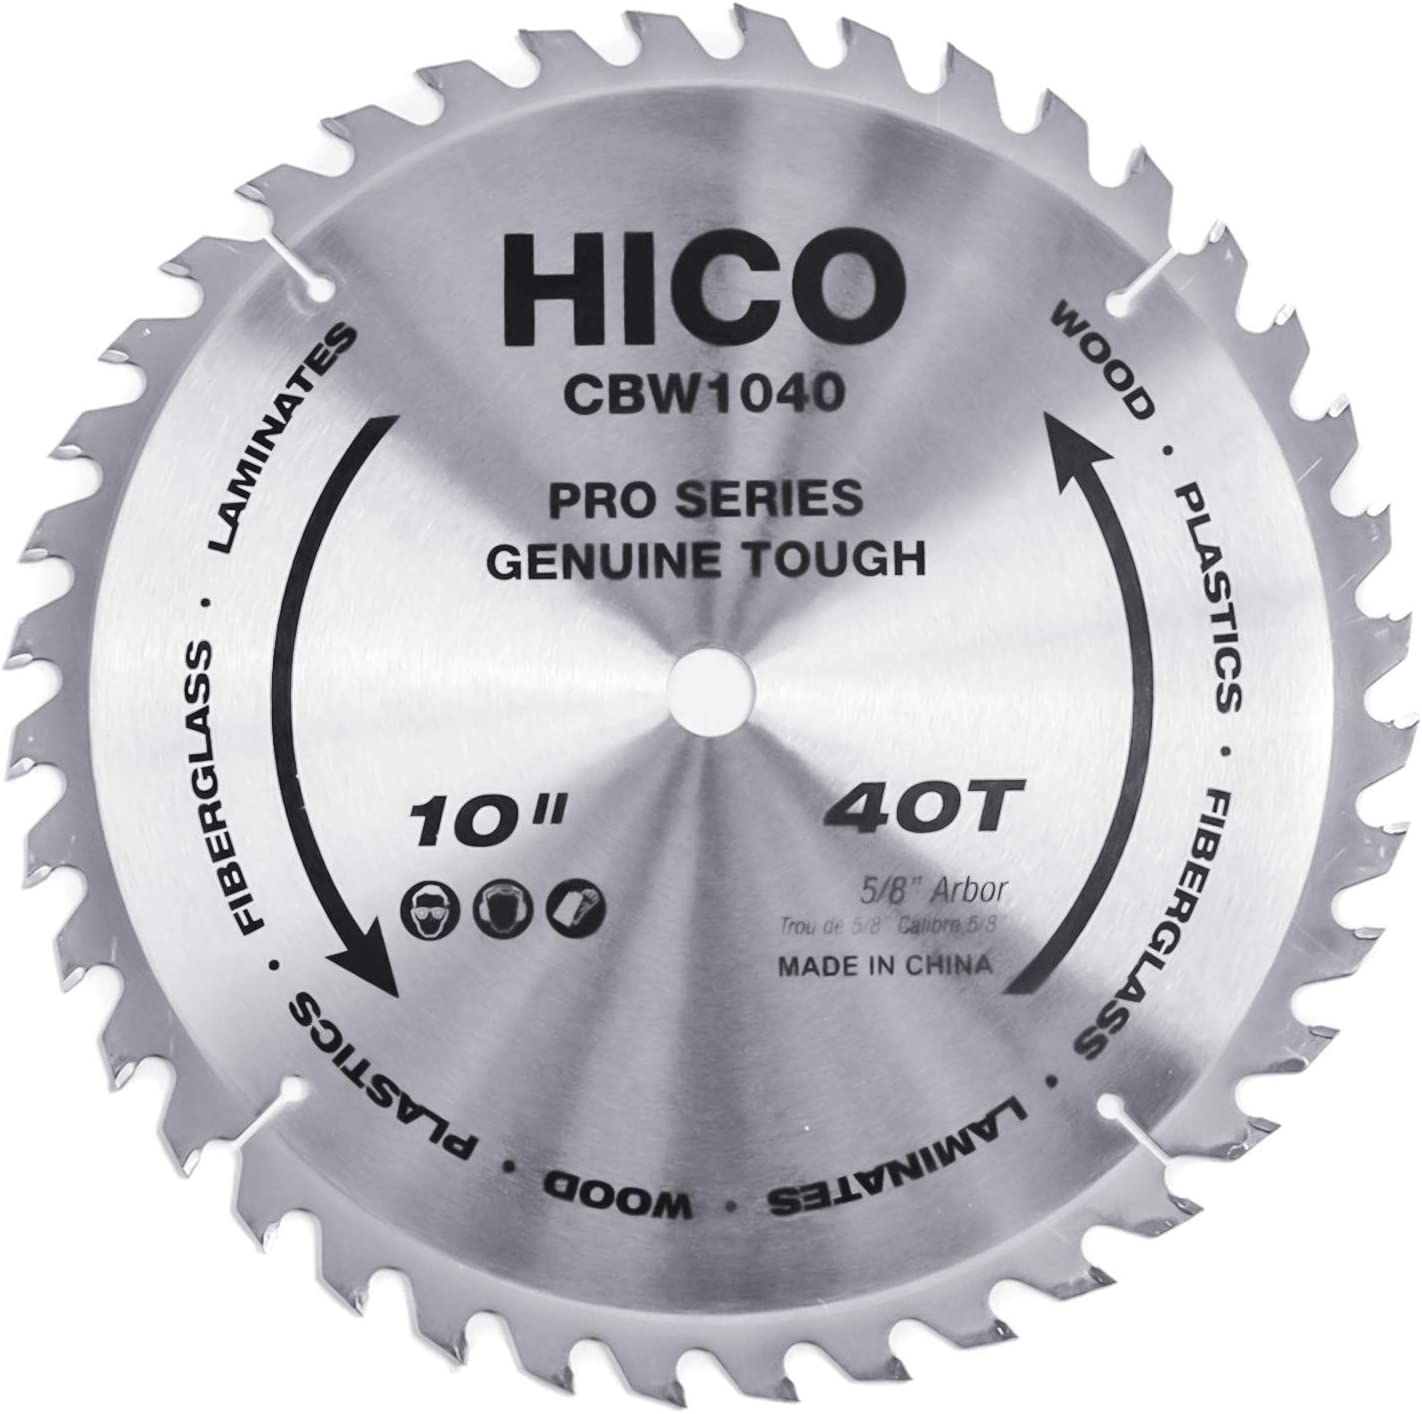 6. HICO 40-Tooth ATB Table-Saw Blade